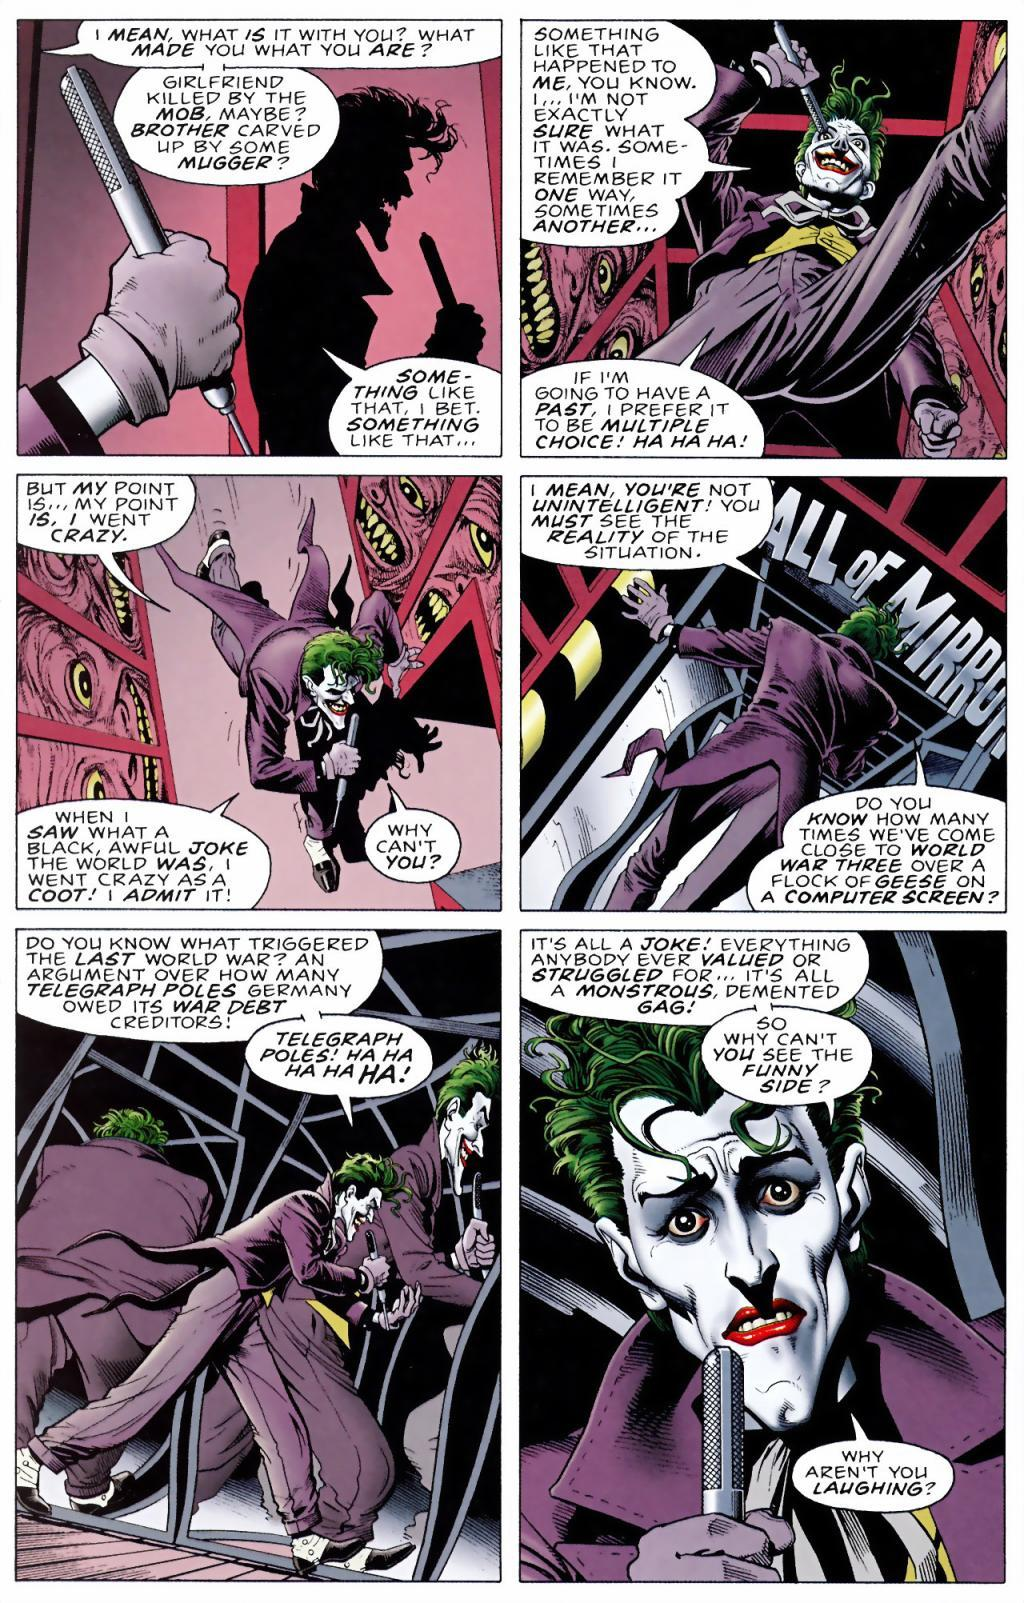 As good as the others were, when I read Joker dialogue, it`s Mark Hamill I hear in my head.